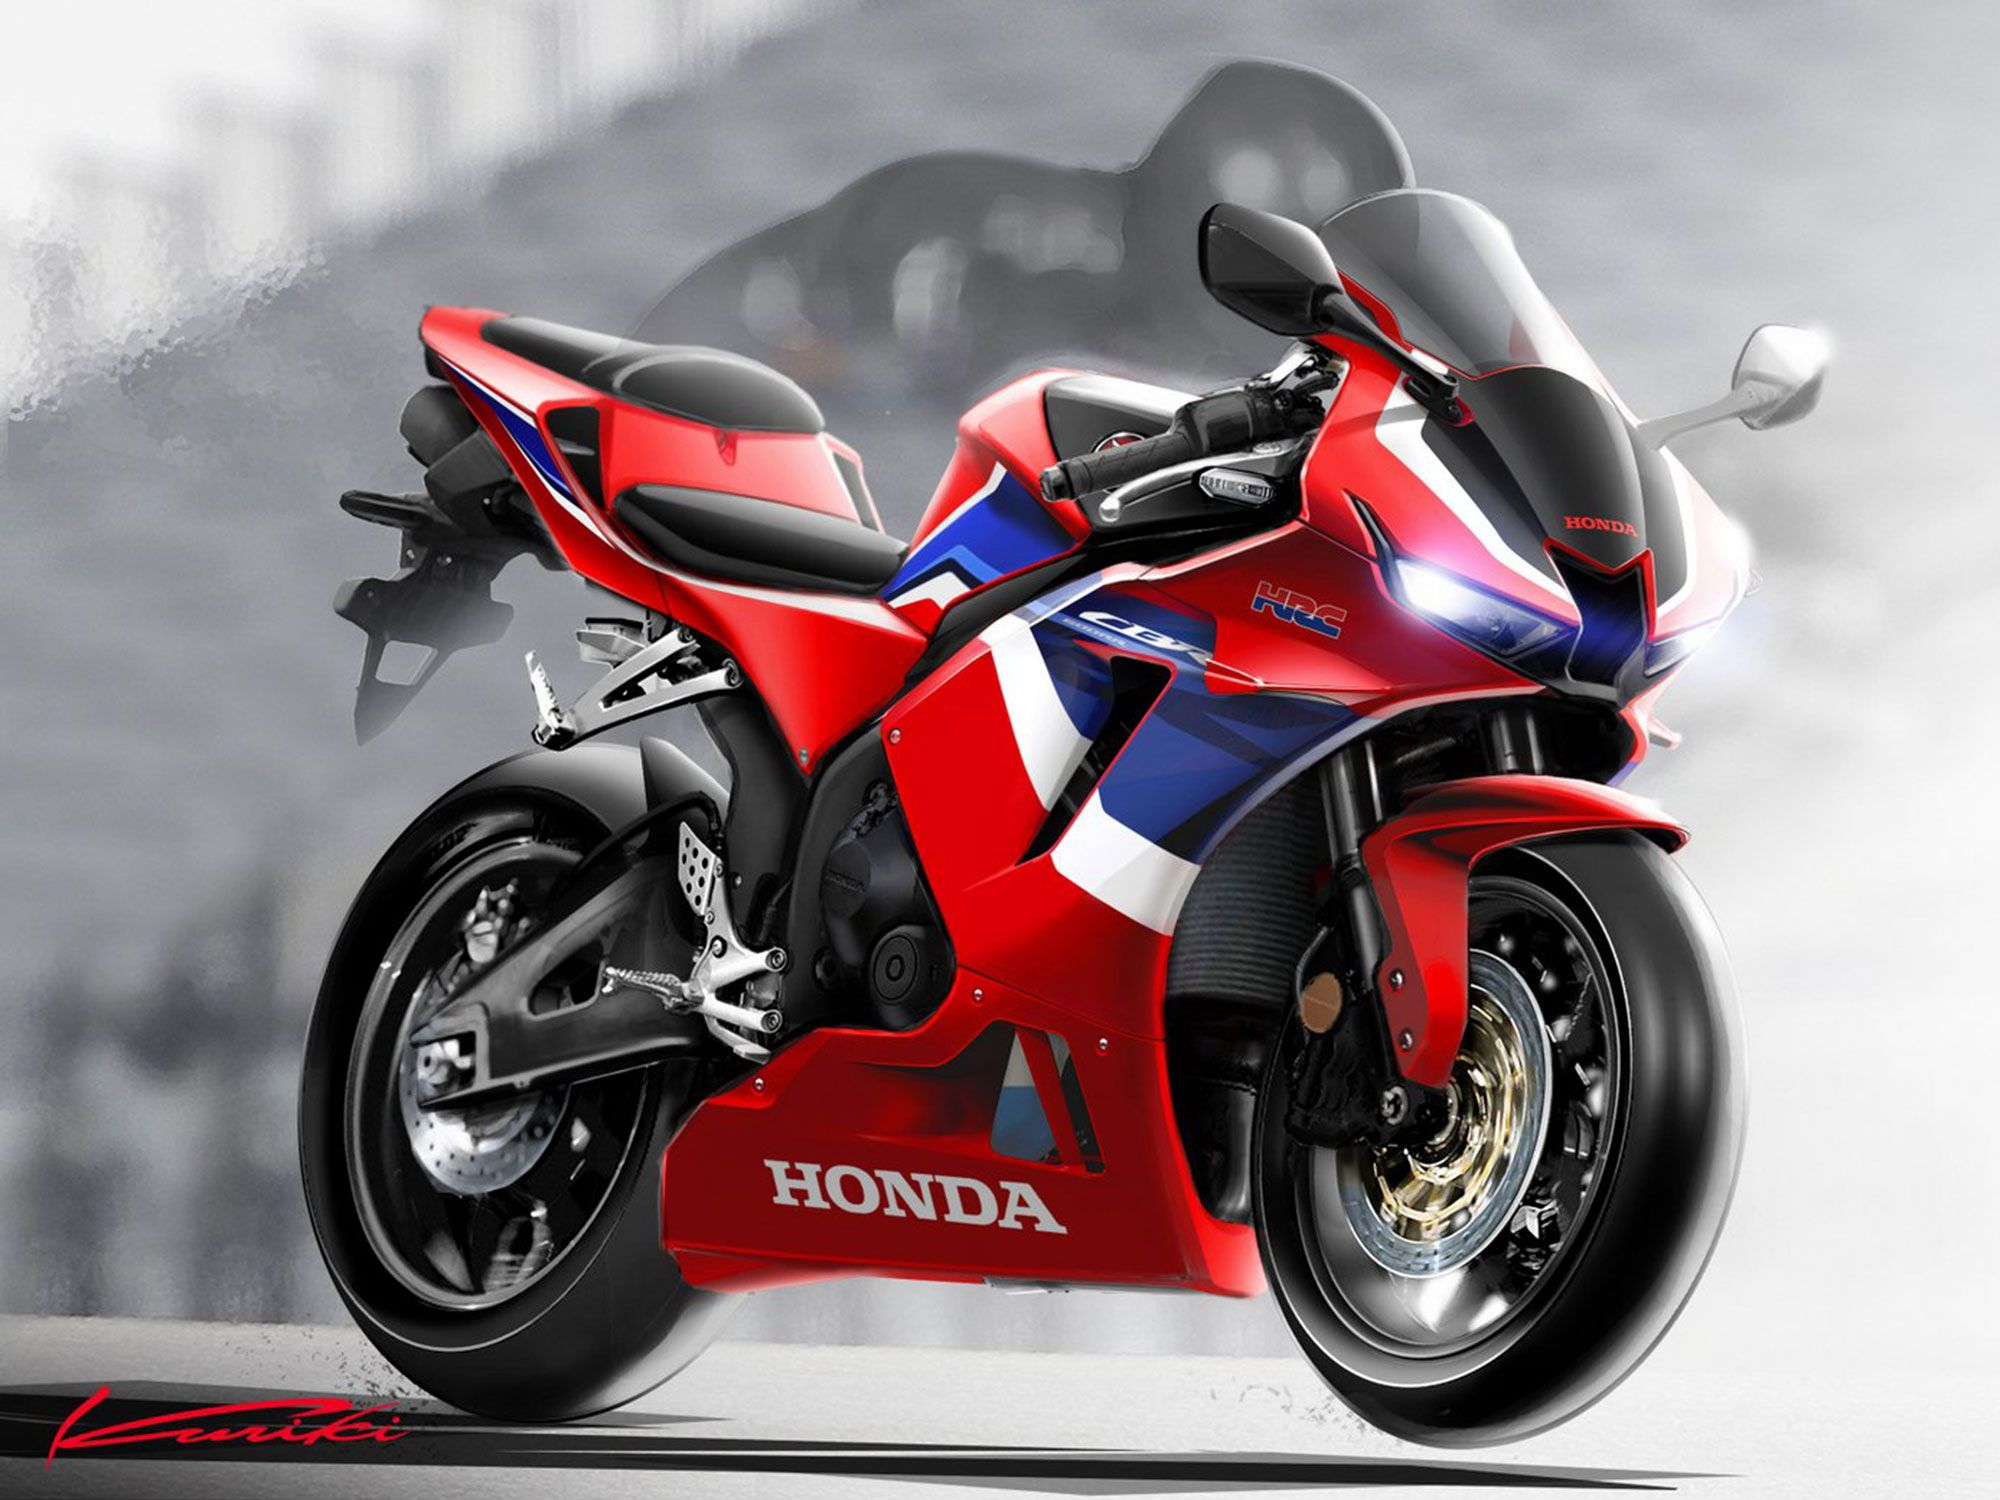 For the time being, the 2021 CBR600RR is only being offered in Asian markets.